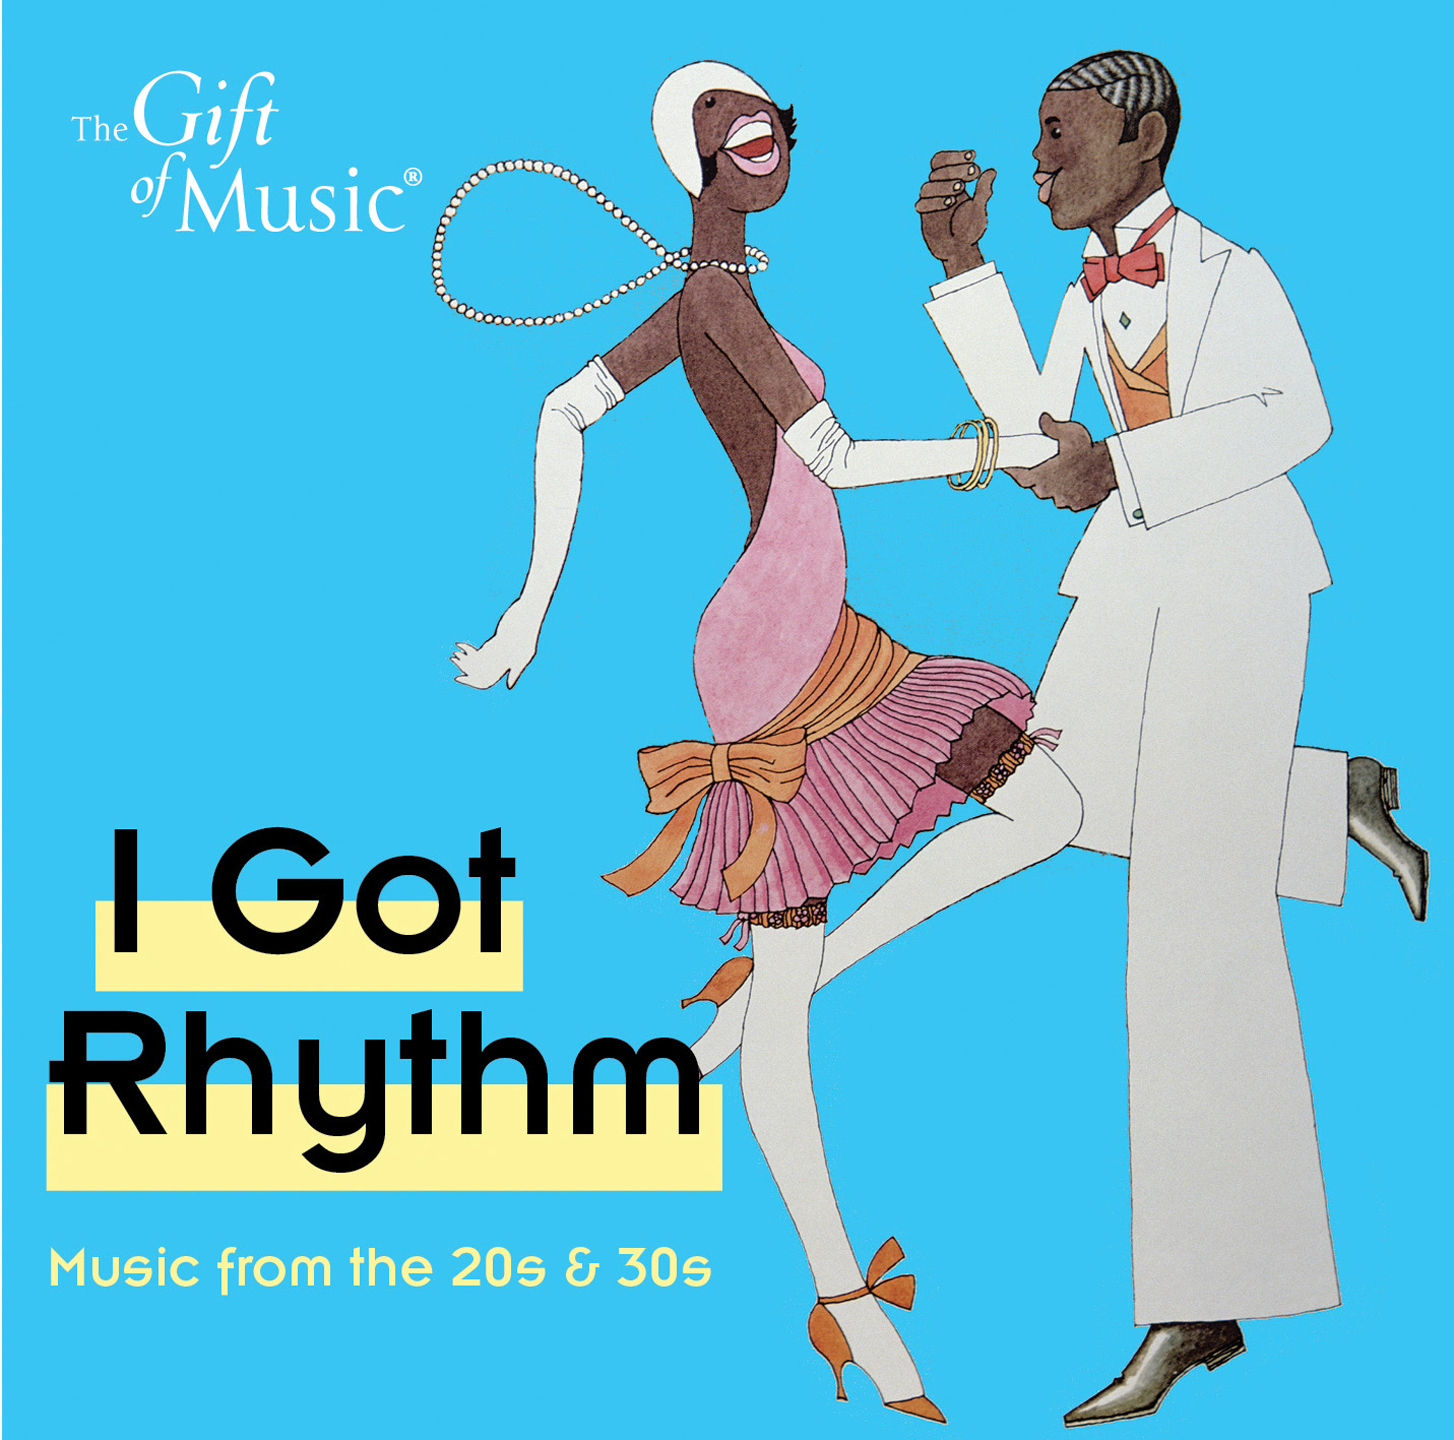 I Got Rhythm: Music from the '20s & '30s